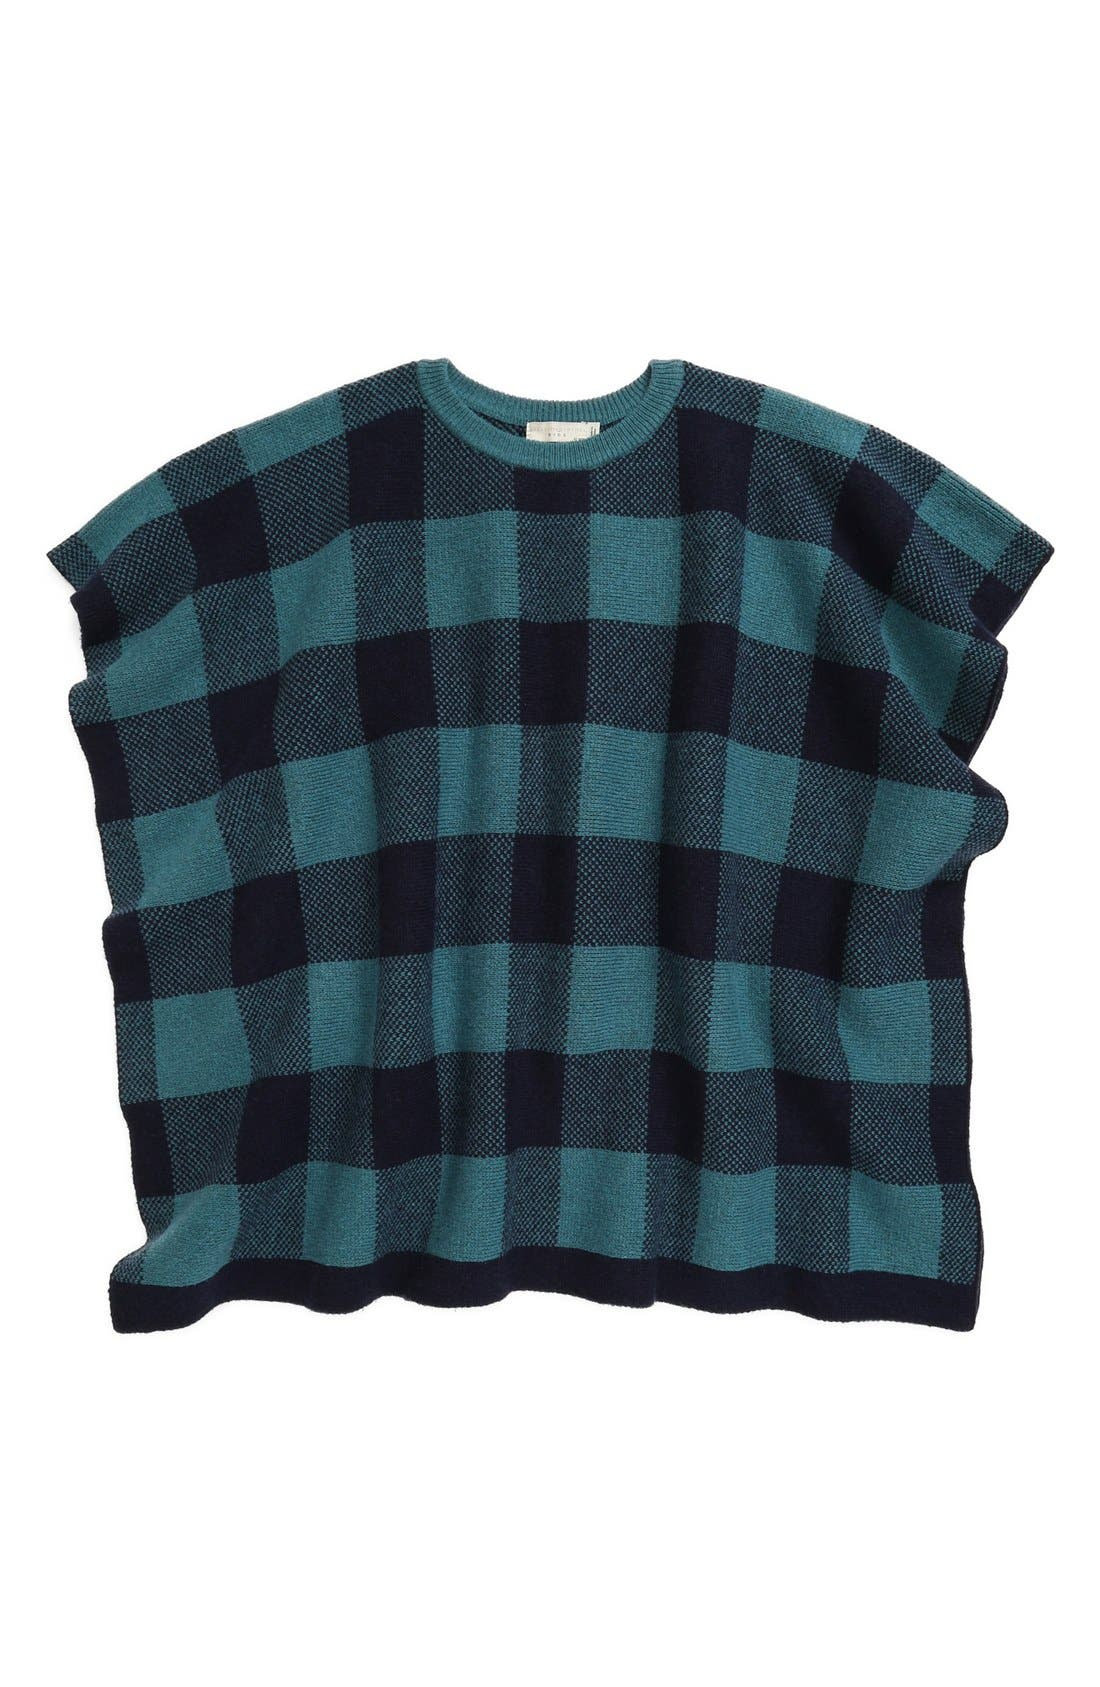 Main Image - Stella McCartney Kids 'Agnes' Check Poncho (Toddler, Little Girls & Big Girls)